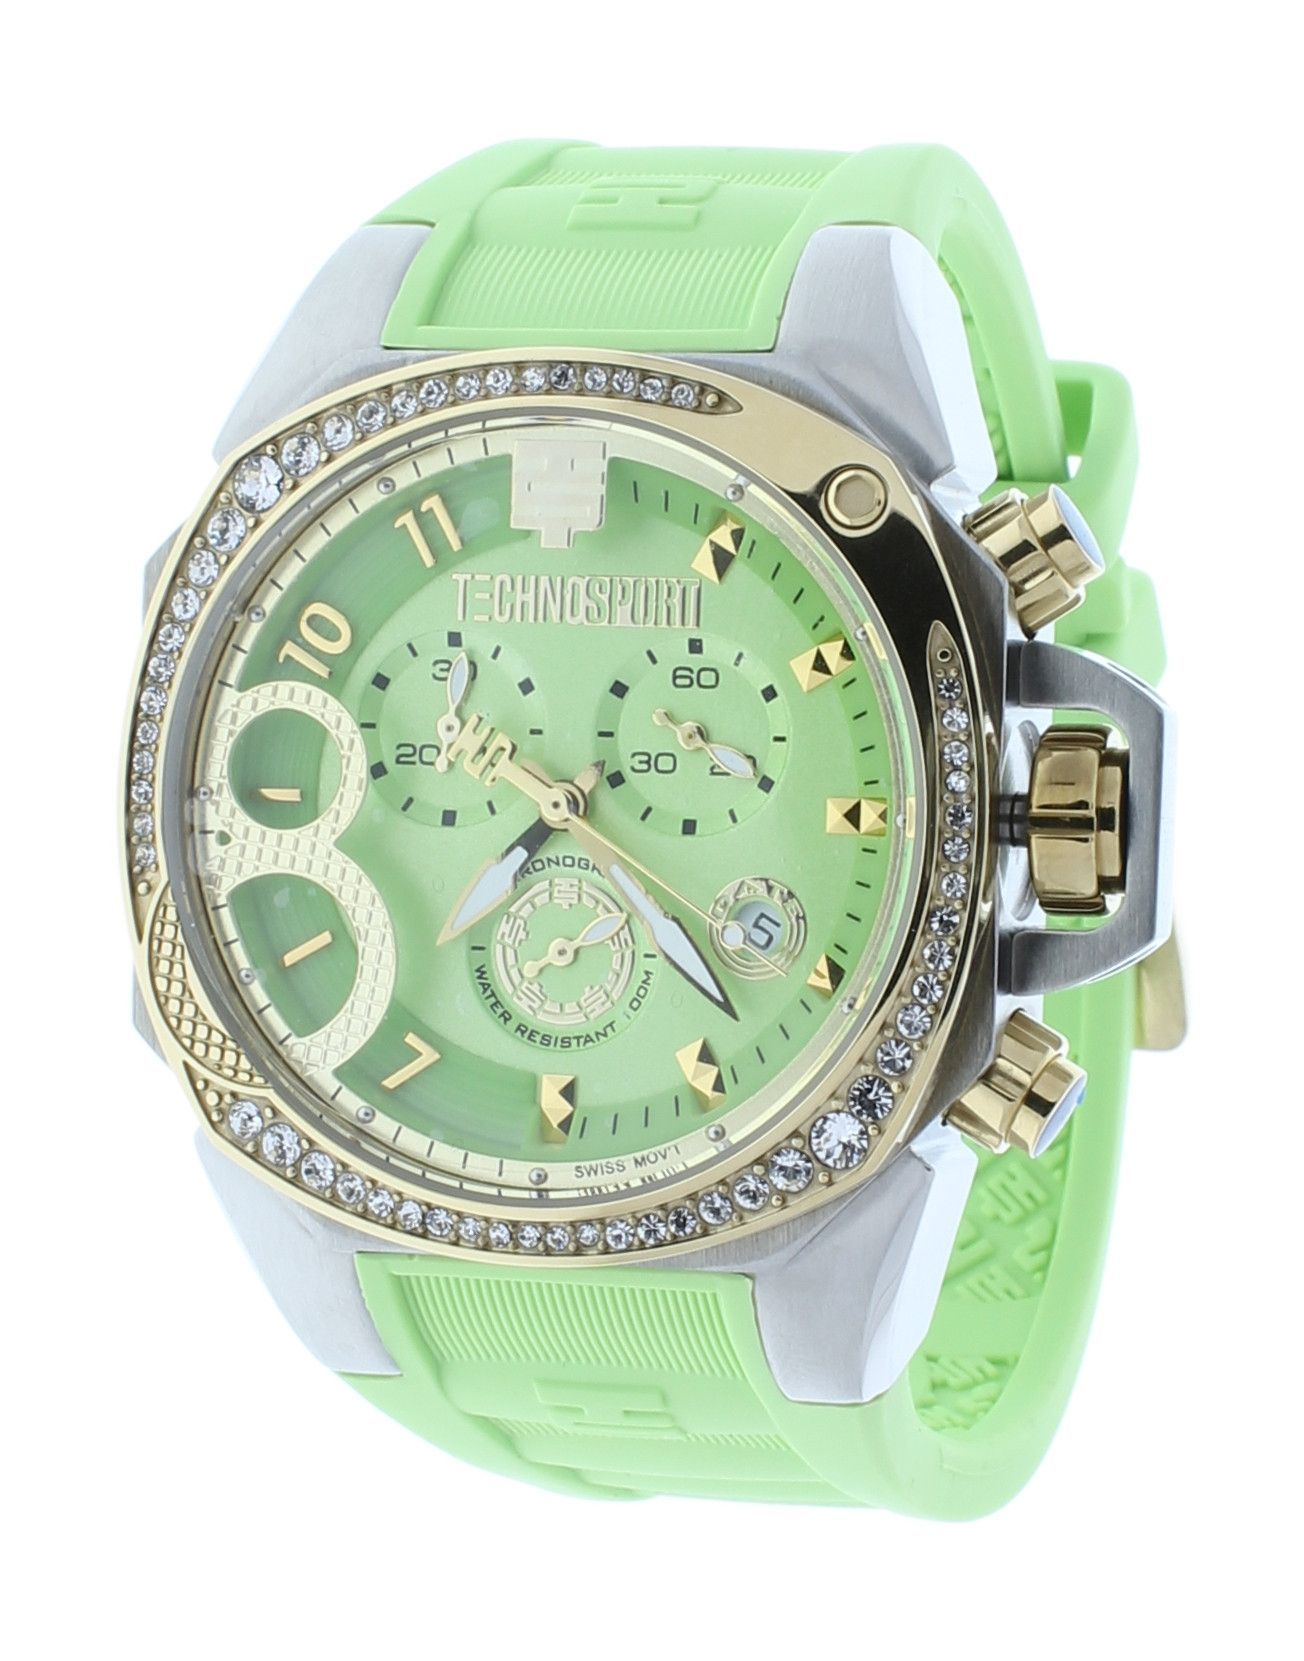 996198f0630 Technosport TS-103-5 Women s Swiss Light Green Chronograph Watch Crystal  Accented Bezel Relógios